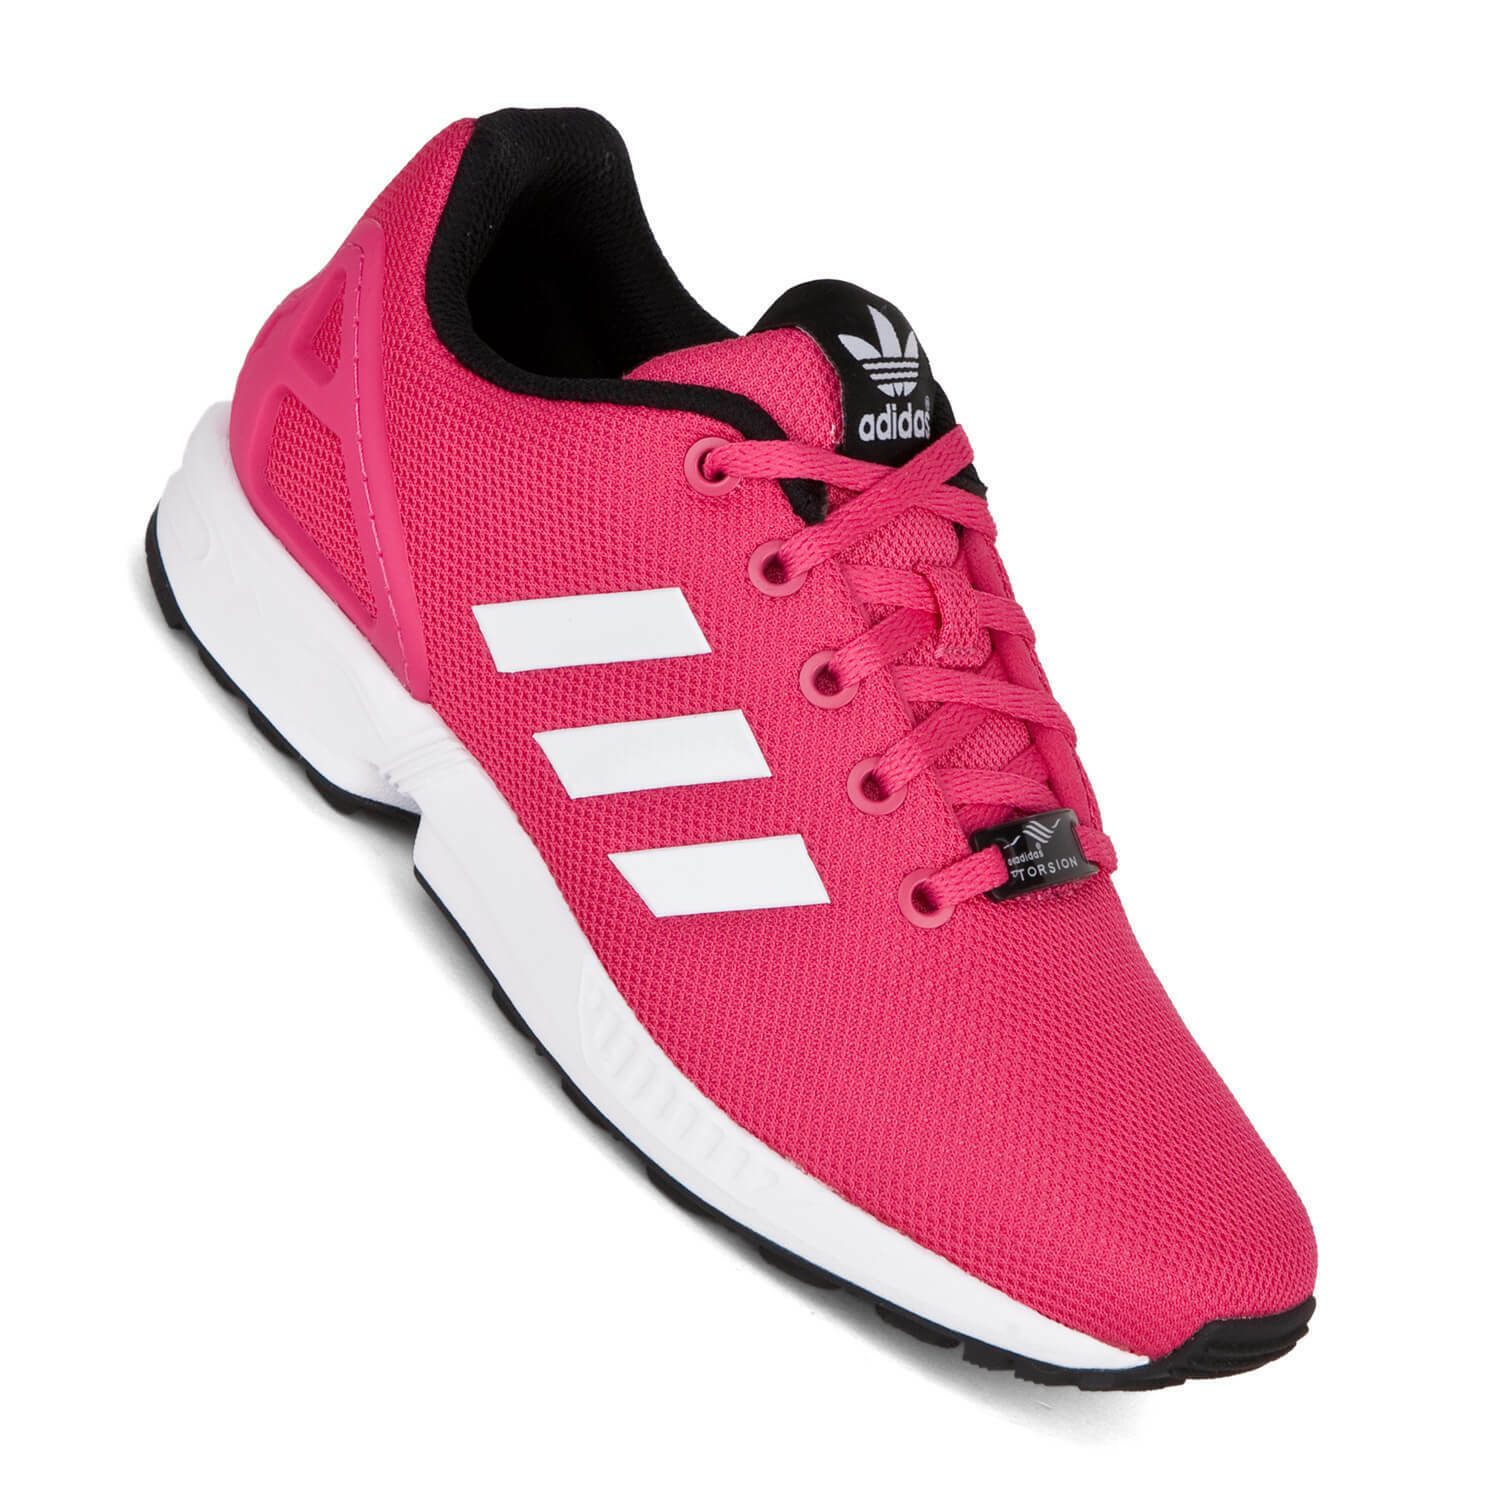 Adidas Flux ZX Flux Adidas Damen Kinder Schuhe equipment pink S74952 26dfbd